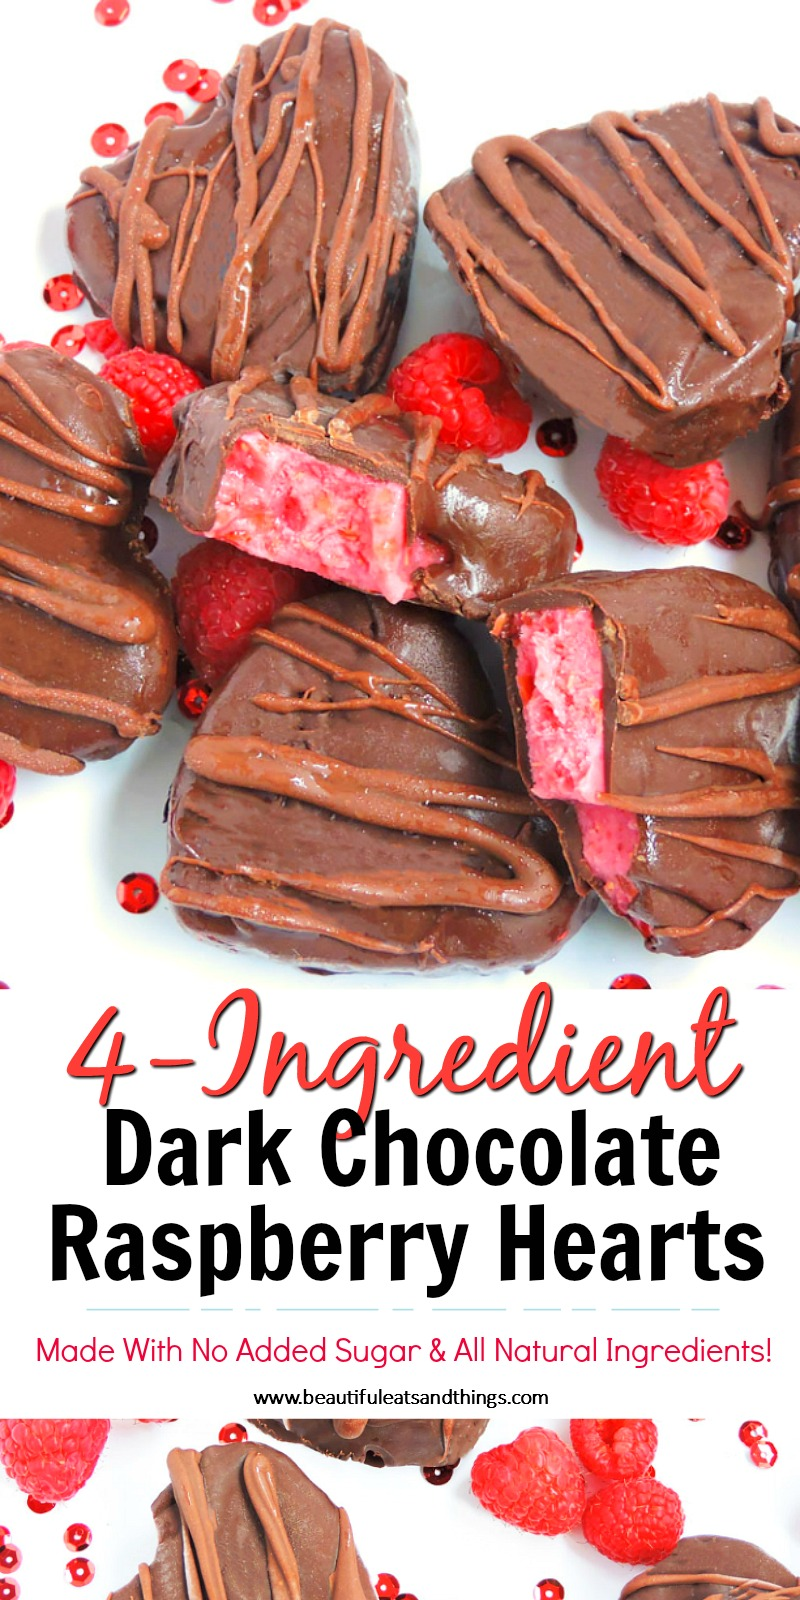 4-Ingredient Dark Chocolate Raspberry Hearts + Made with No Added Sugar, dark chocolate hearts with a pink raspberry and date filling, decorated with red Valentine's Day hearts